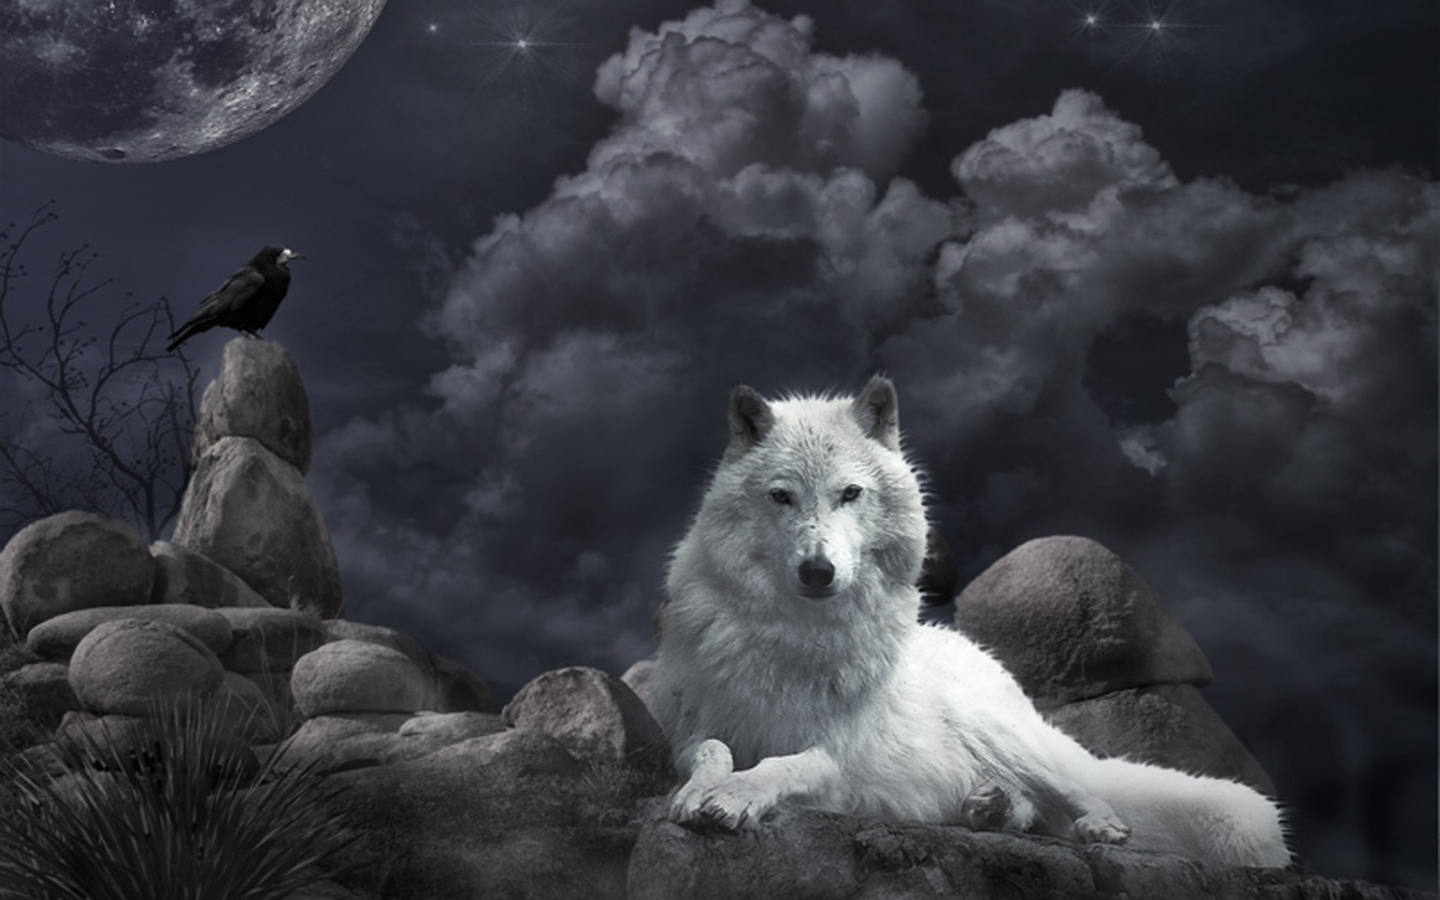 Wallpaper White Wolf and raven in the night 1440x900 Wallpapers 3d 1440x900